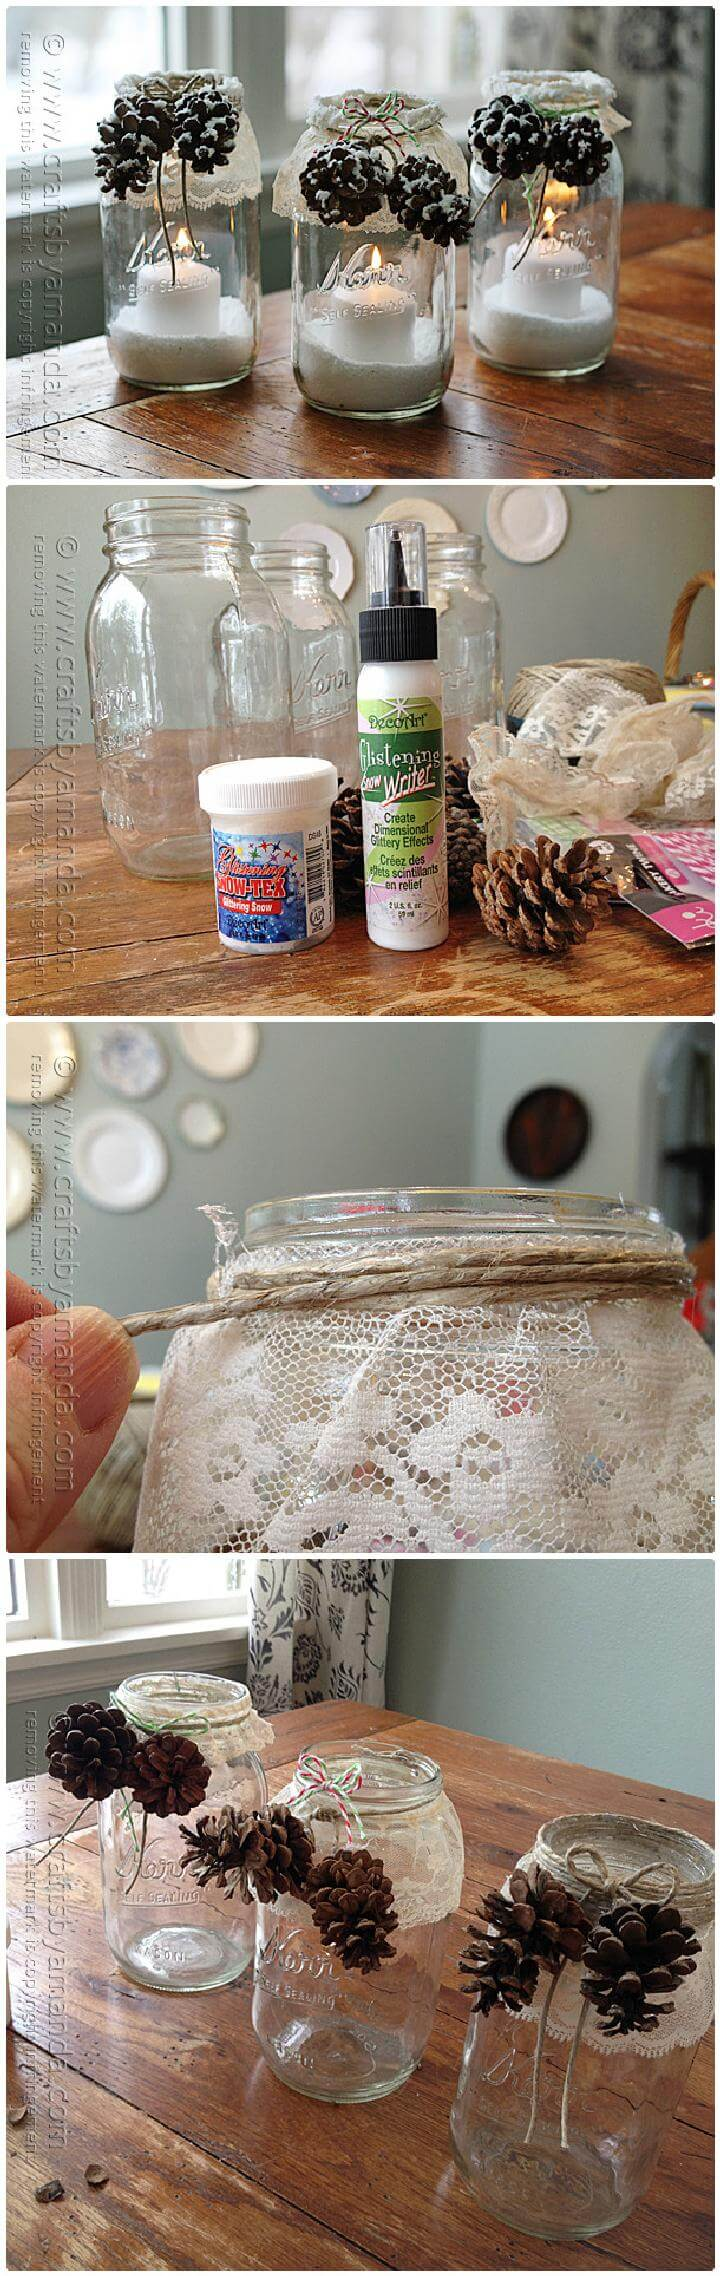 DIY Snowy Pinecone Candle Jar - Mason Jar Winter Luminaries